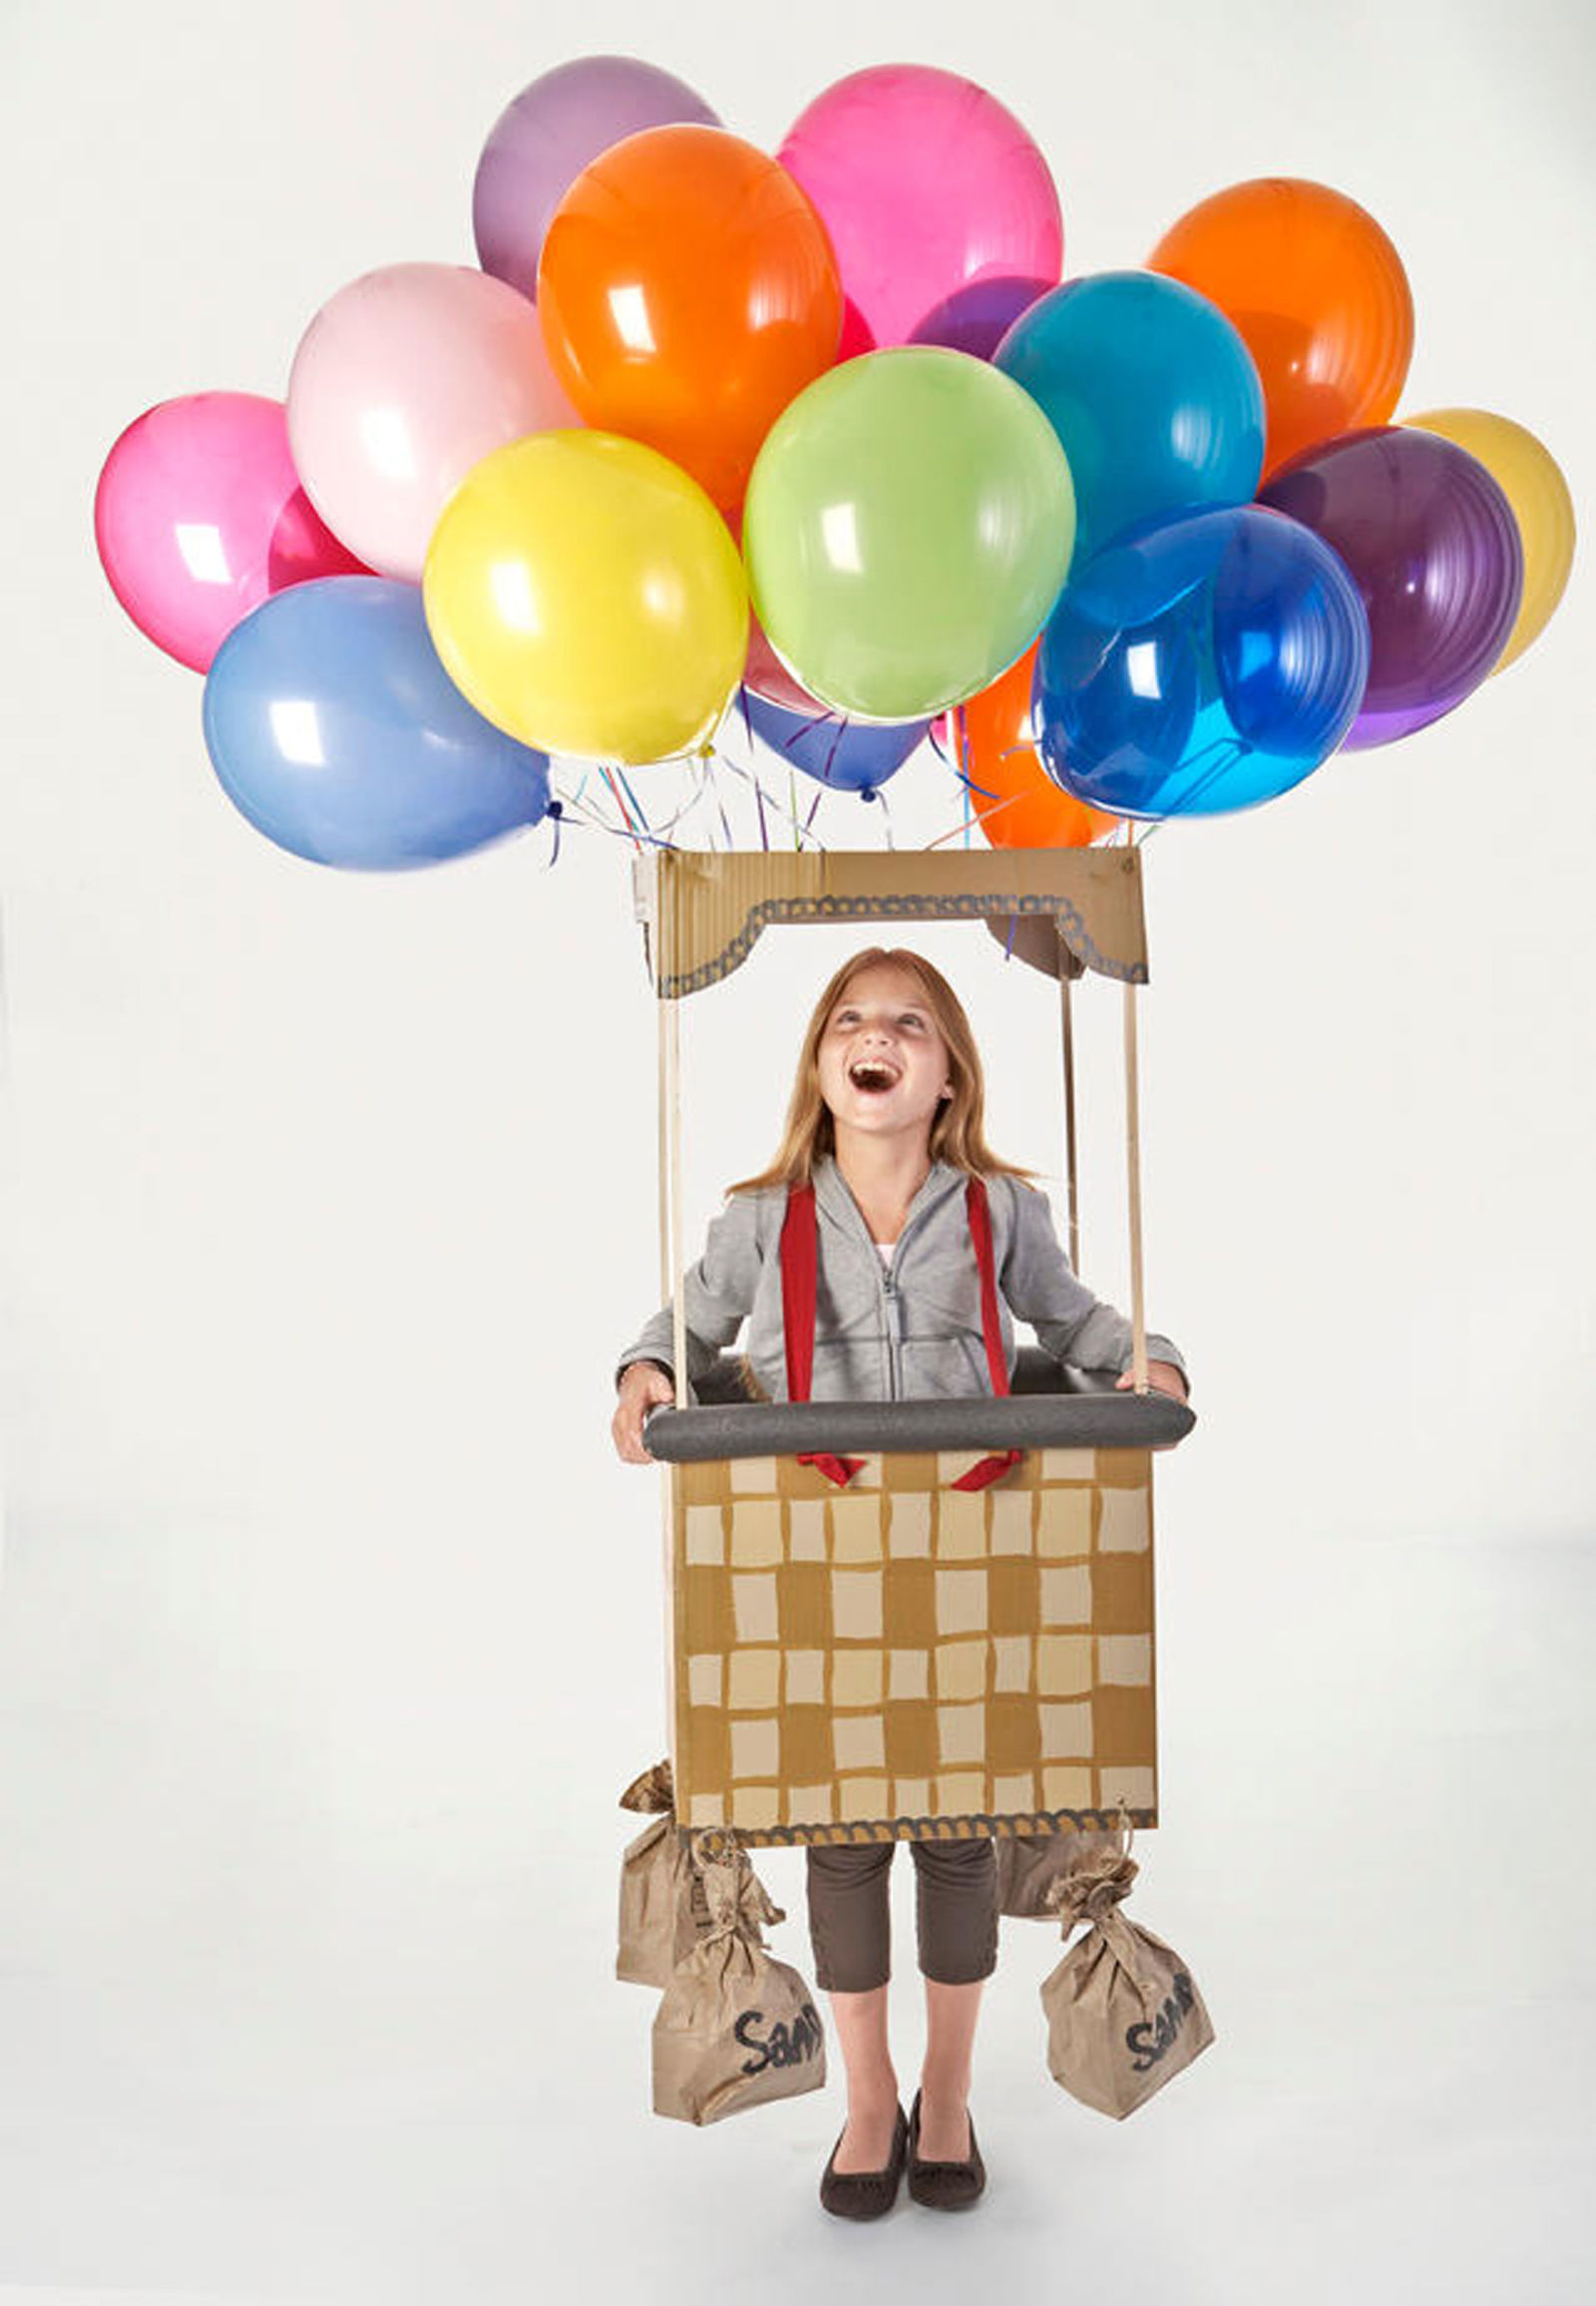 Hot air balloon costume for kids for Homemade halloween costumes for kids